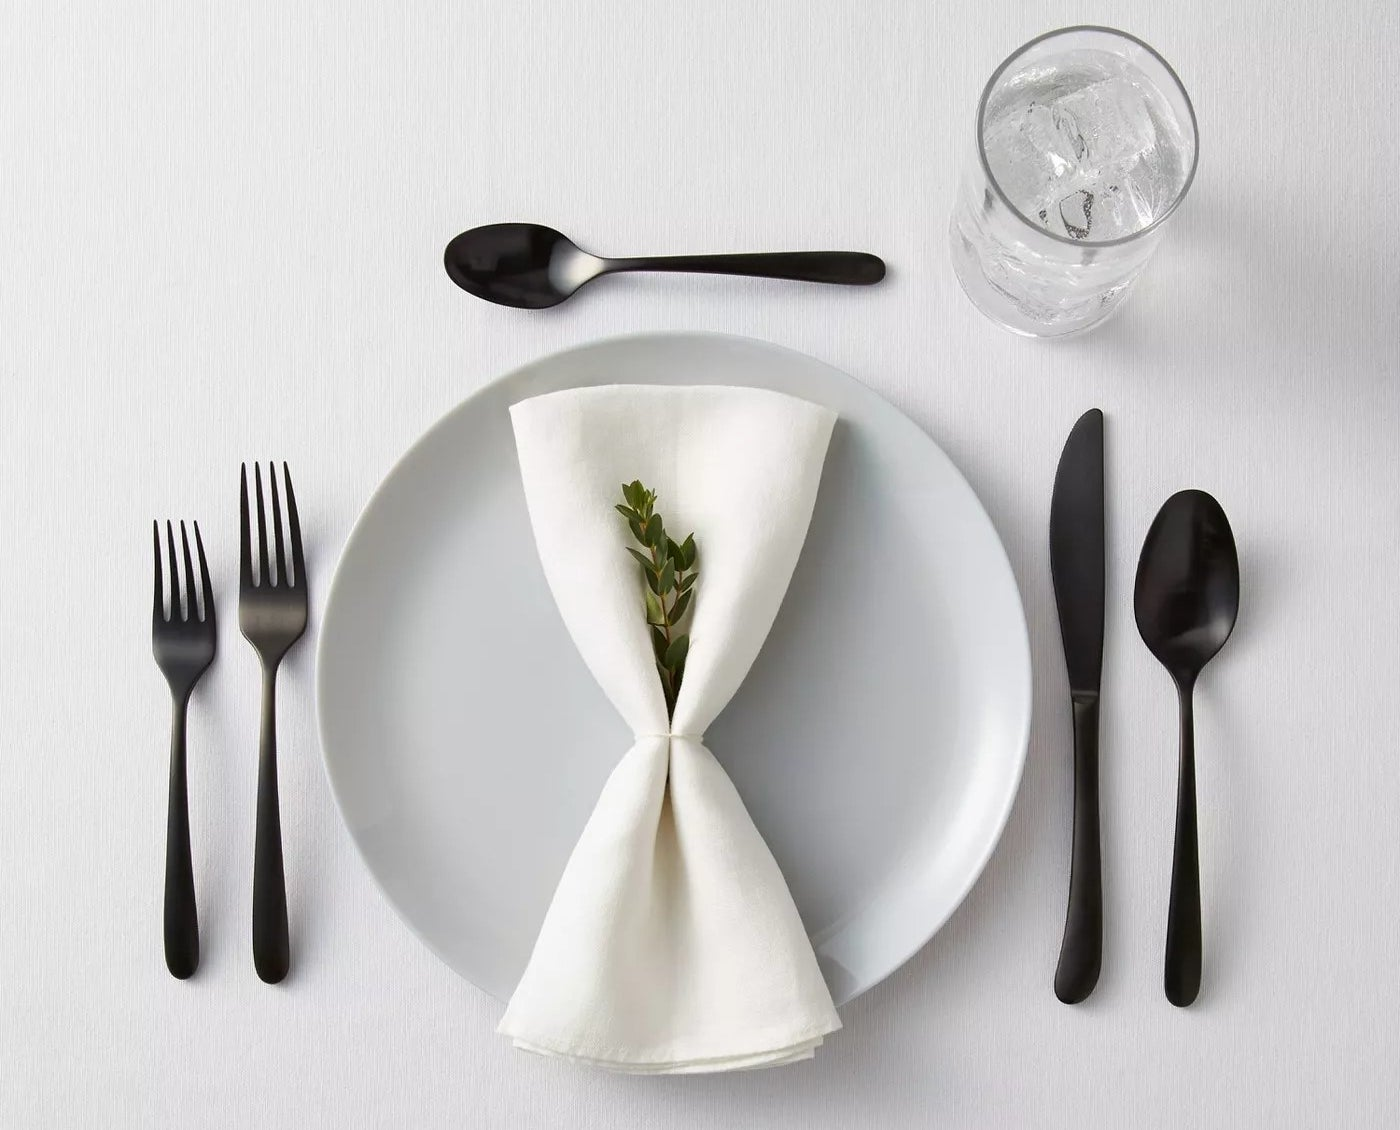 silverware and plate on table